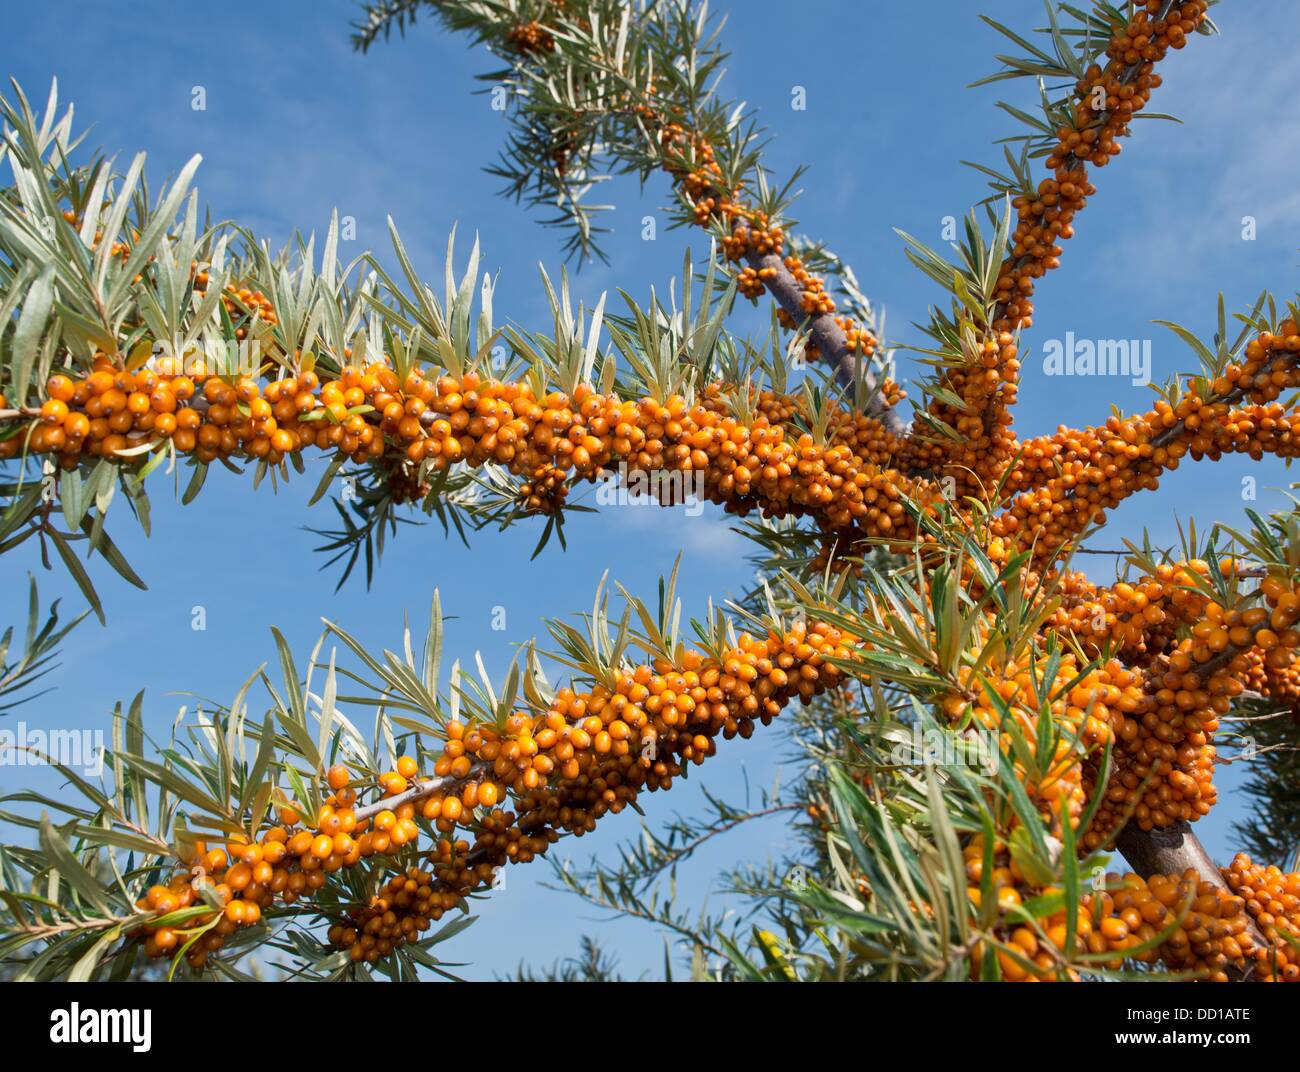 Tempelberg, Germany. 23rd Aug, 2013. The ripe sea-buskthorn berries shine on a plantation of the sea-buckthorn garden - Stock Image